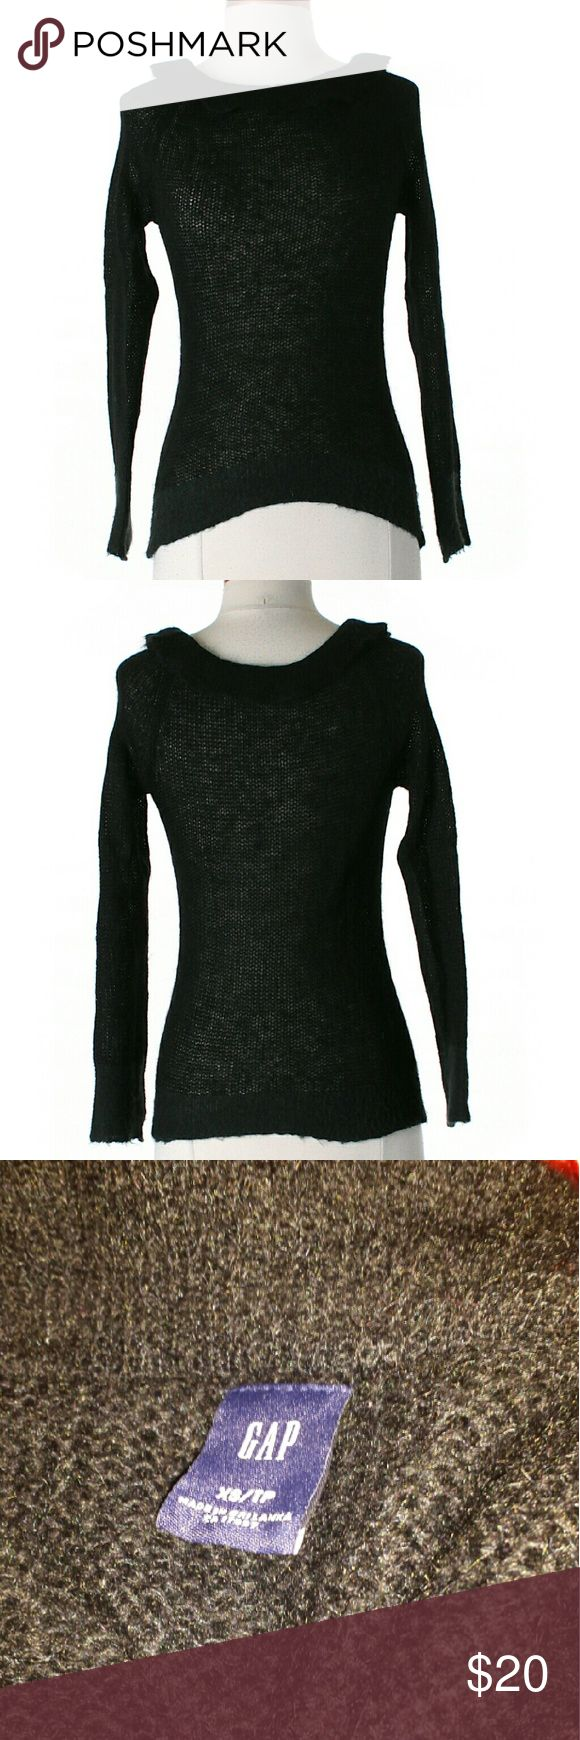 *$10 SALE* Gap Black Sweater 40% Nylon 60% Mohair  Very light sweater.  Great as a cover up for the beach,  or a bonfire.  Small open knit design.  M4  #gap #black #knit #sweater #coverup #summer #bonfire #beach #light #scoopneck Gap Sweaters Crew & Scoop Necks